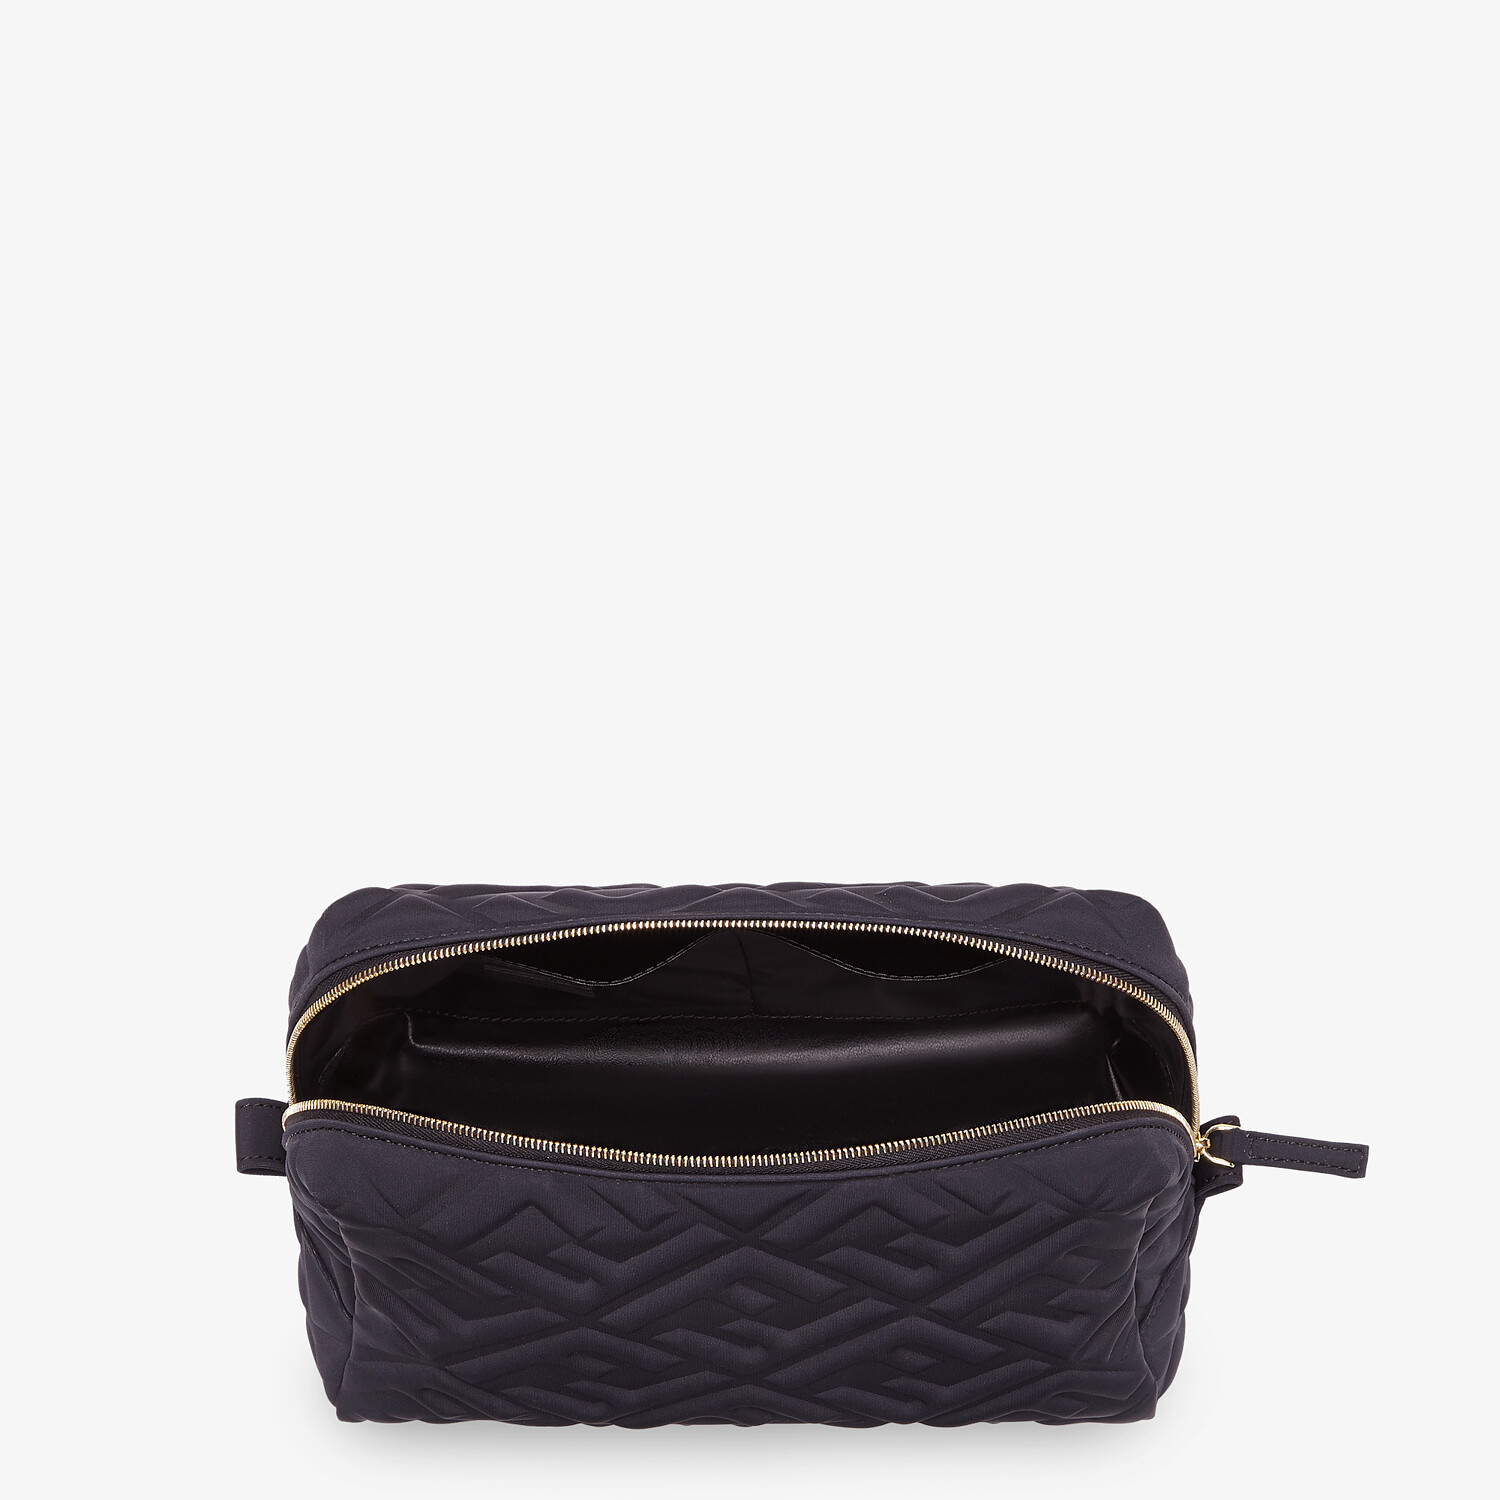 FENDI MEDIUM BEAUTY POUCH - Black LYCRA® toiletry case - view 3 detail